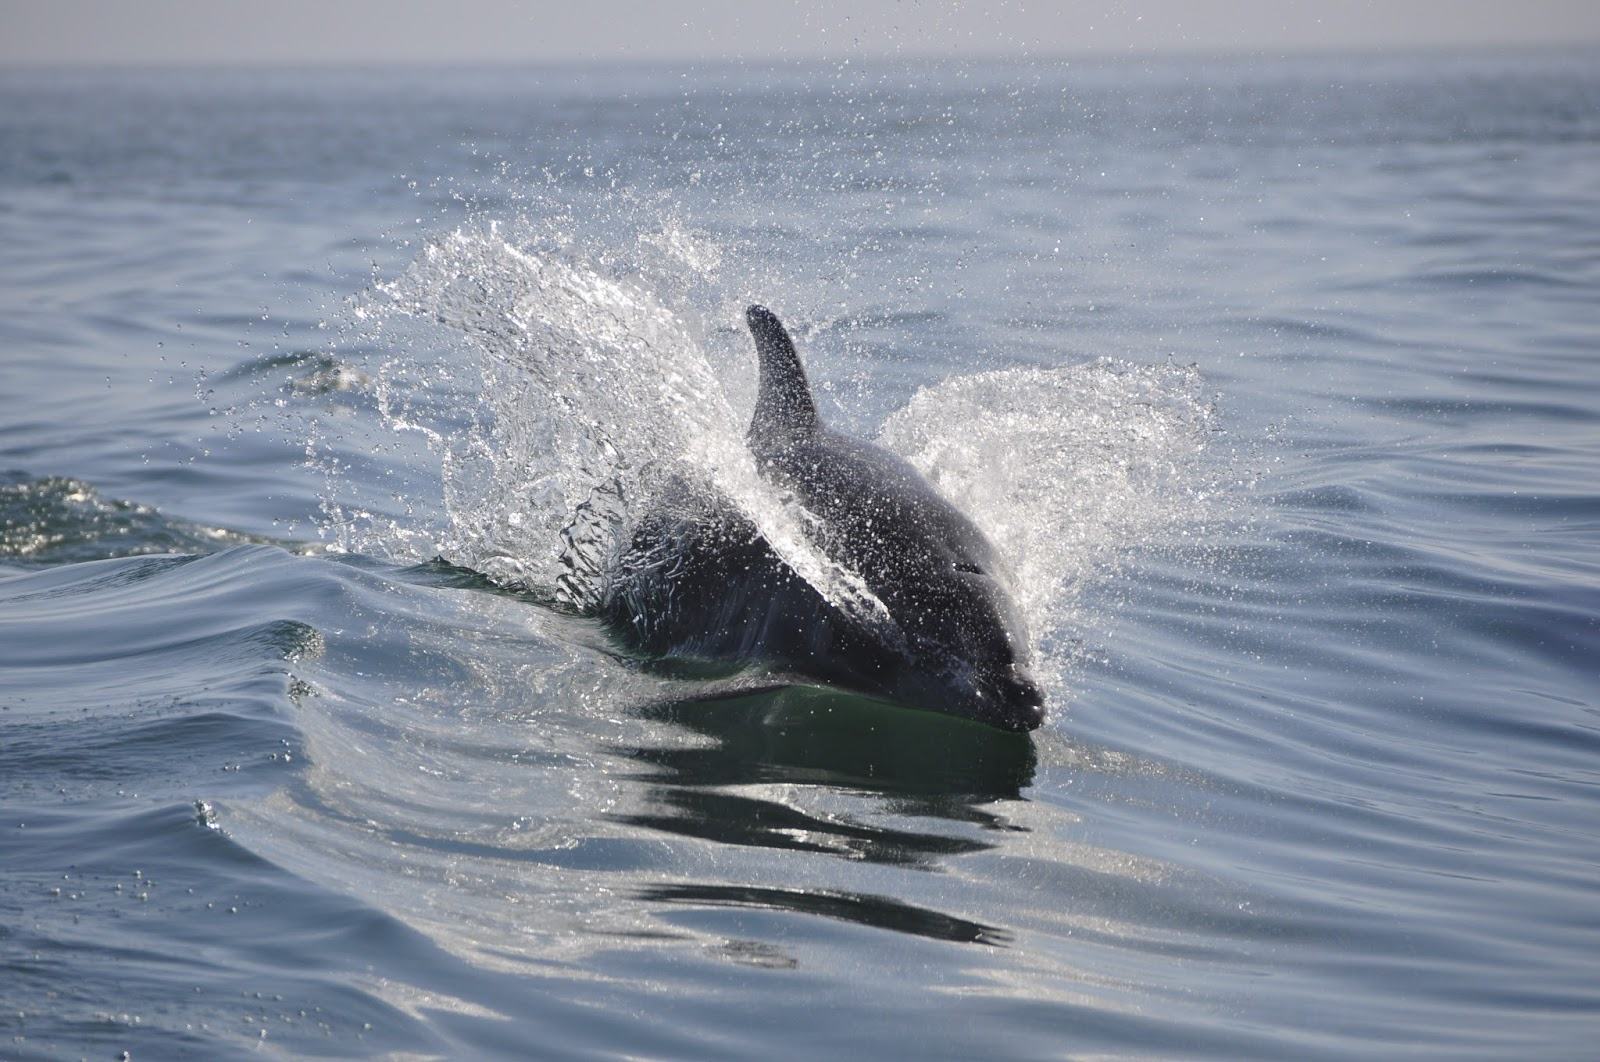 A dolphin swimming across the ocean.